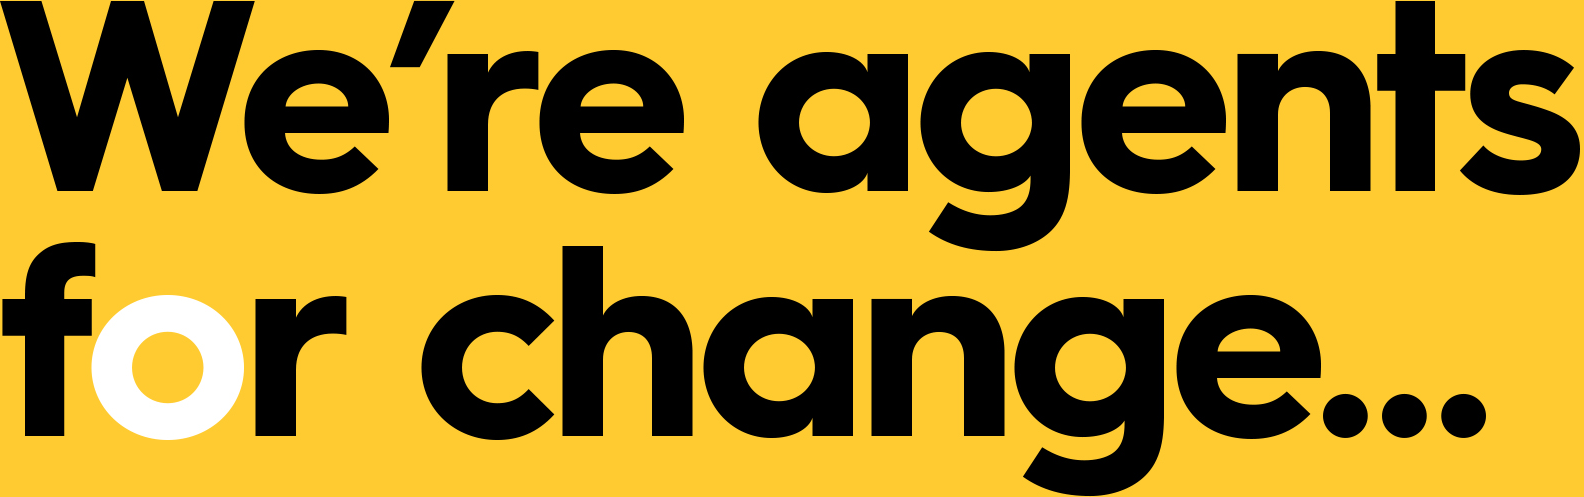 We're agents for change...